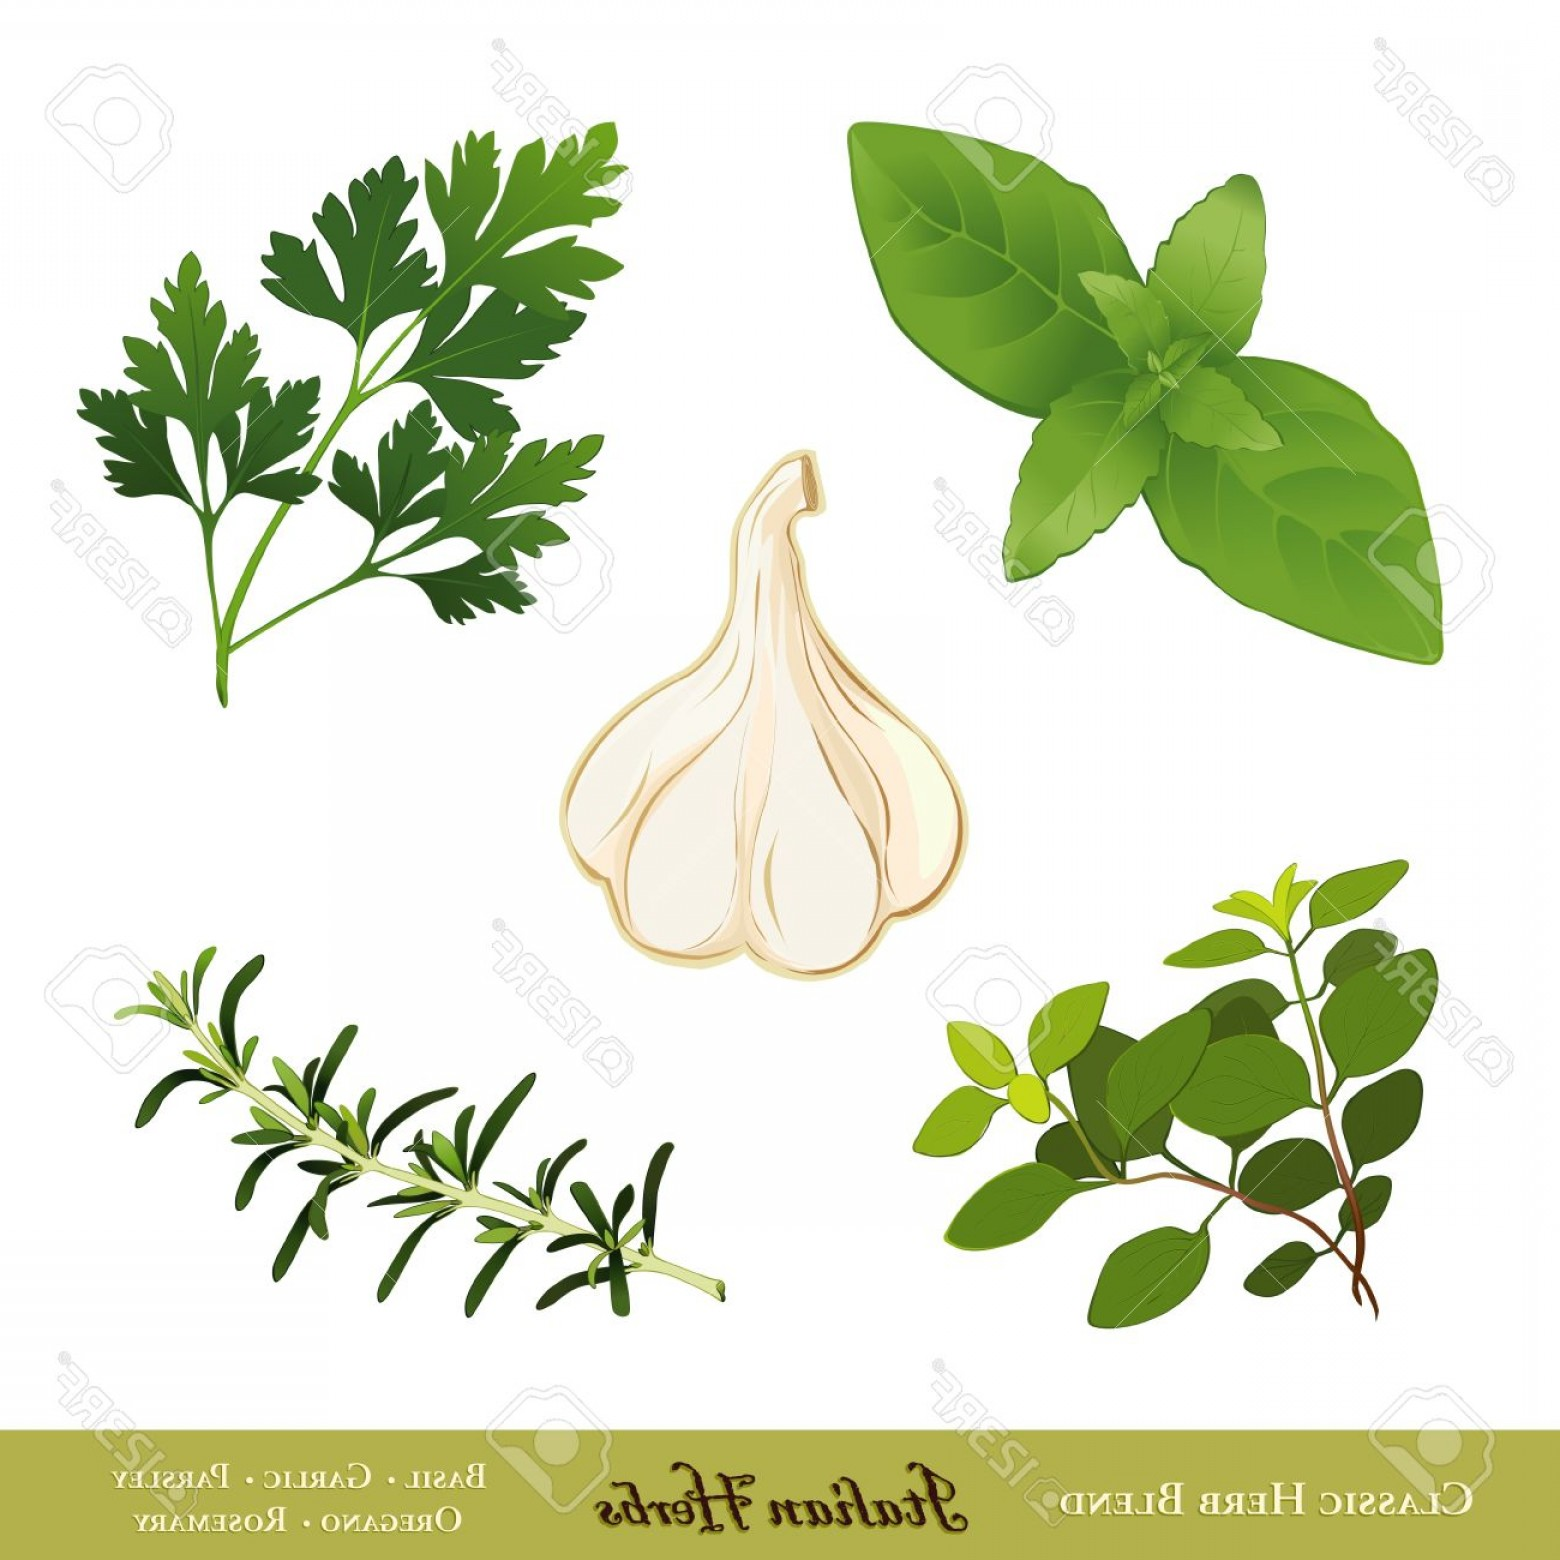 Basil Vector: Phototraditional Italian Herbs Sweet Basil Garlic Flat Leaf Parsley Oregano Rosemary Isolated On White